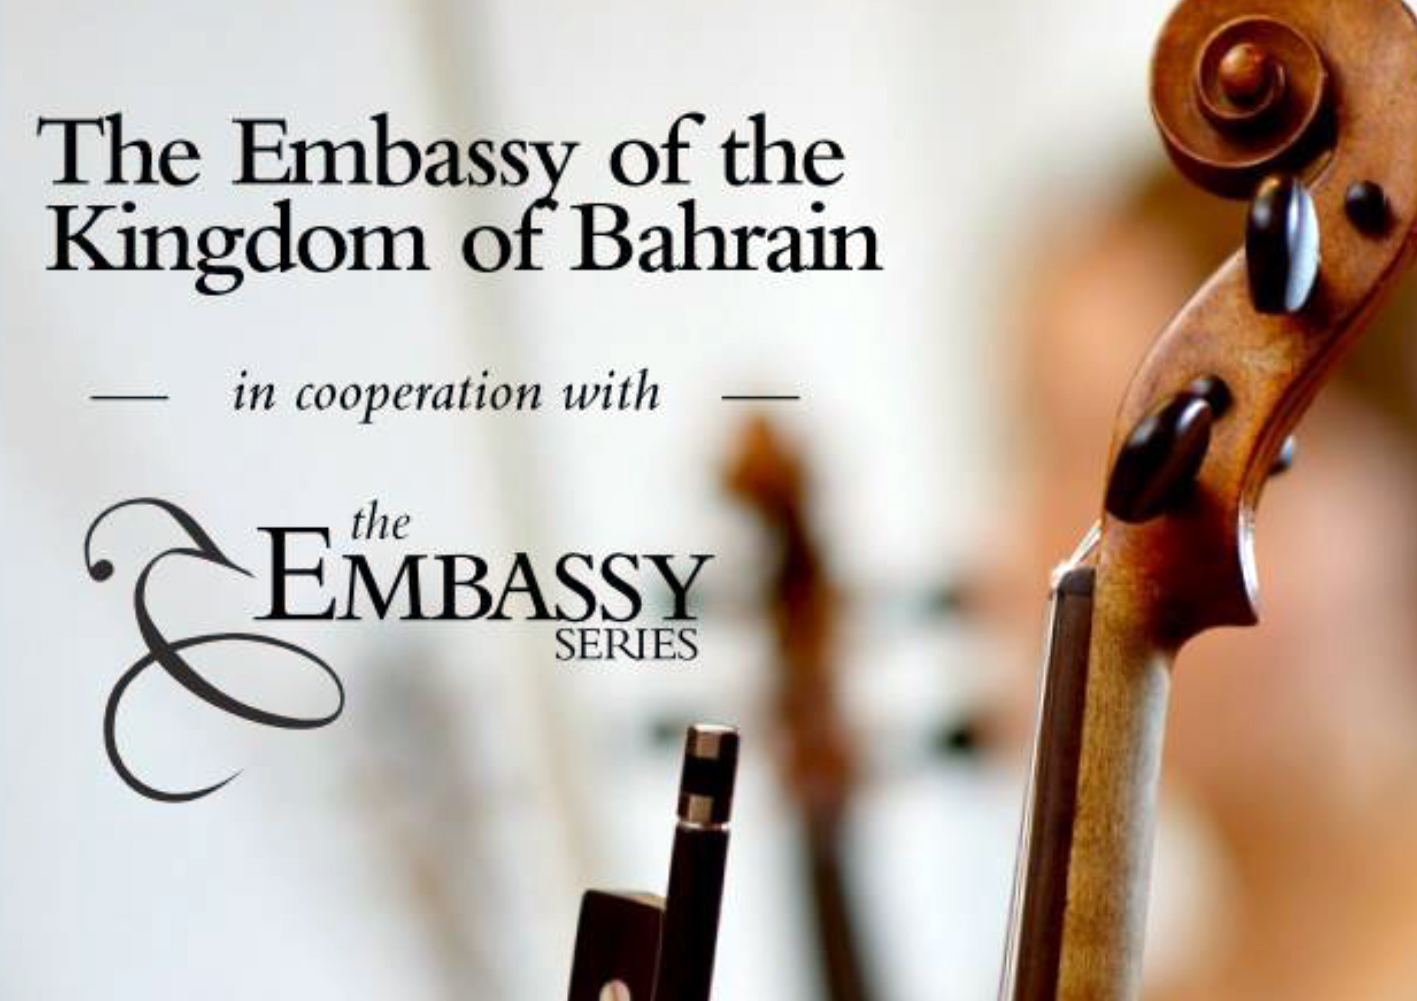 The Embassy of the Kingdom of Bahrain